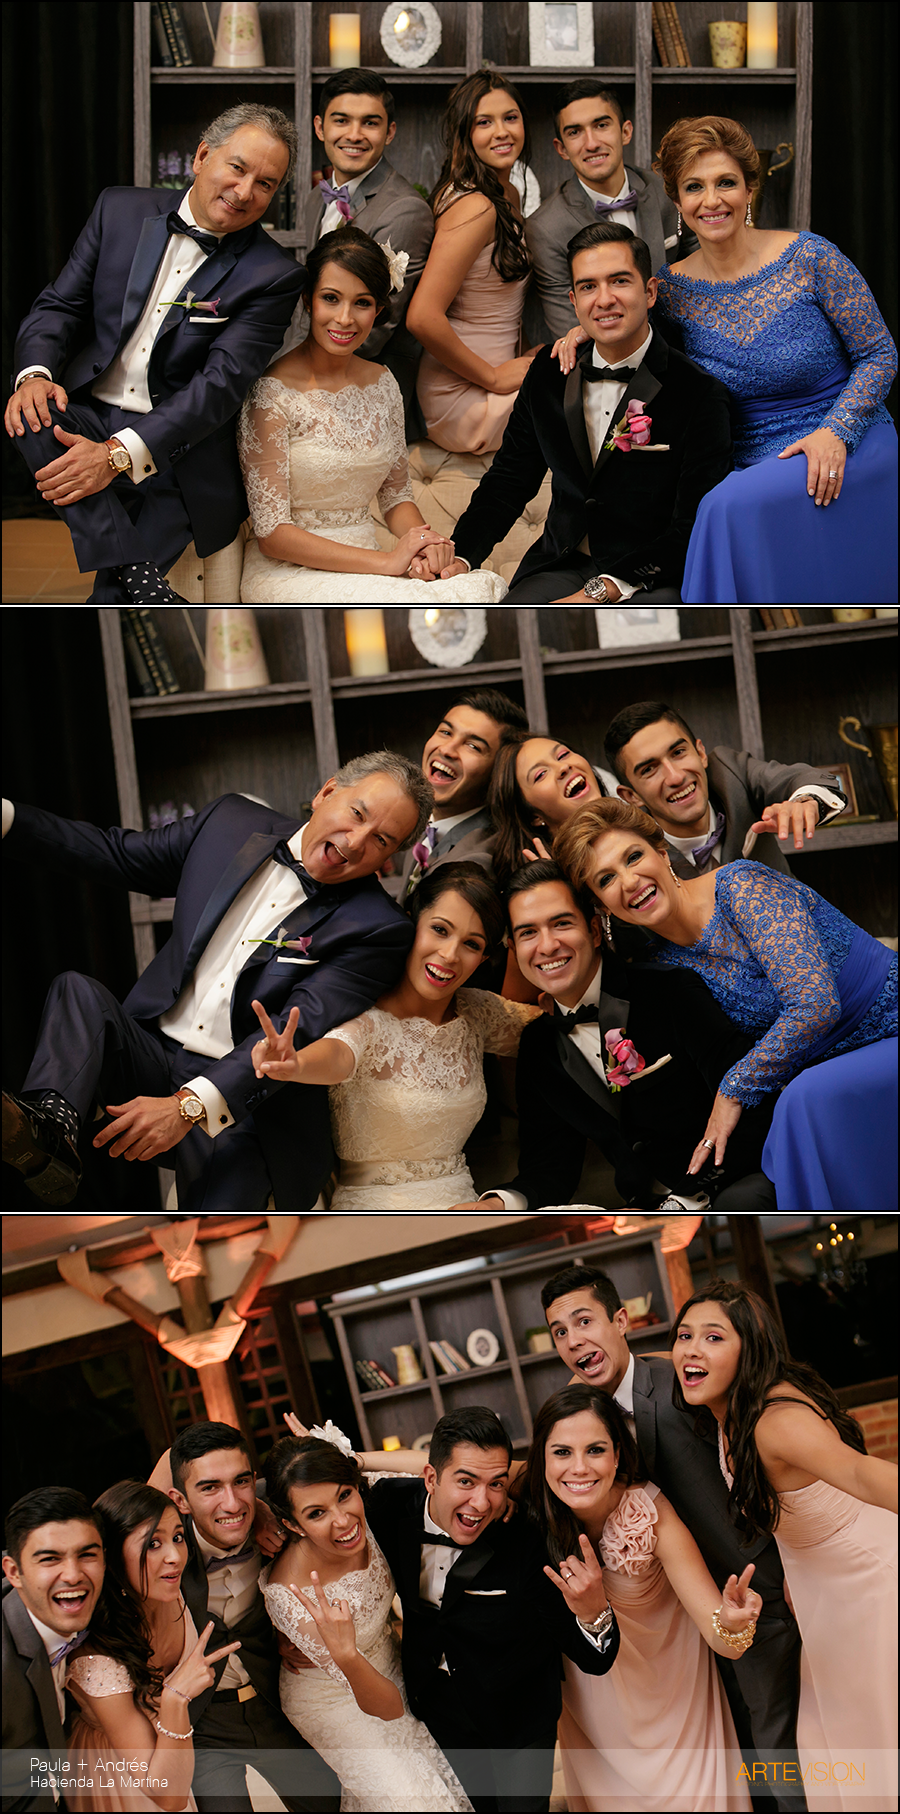 Wedding-Photography-La-Martina-Paula-Andres-27